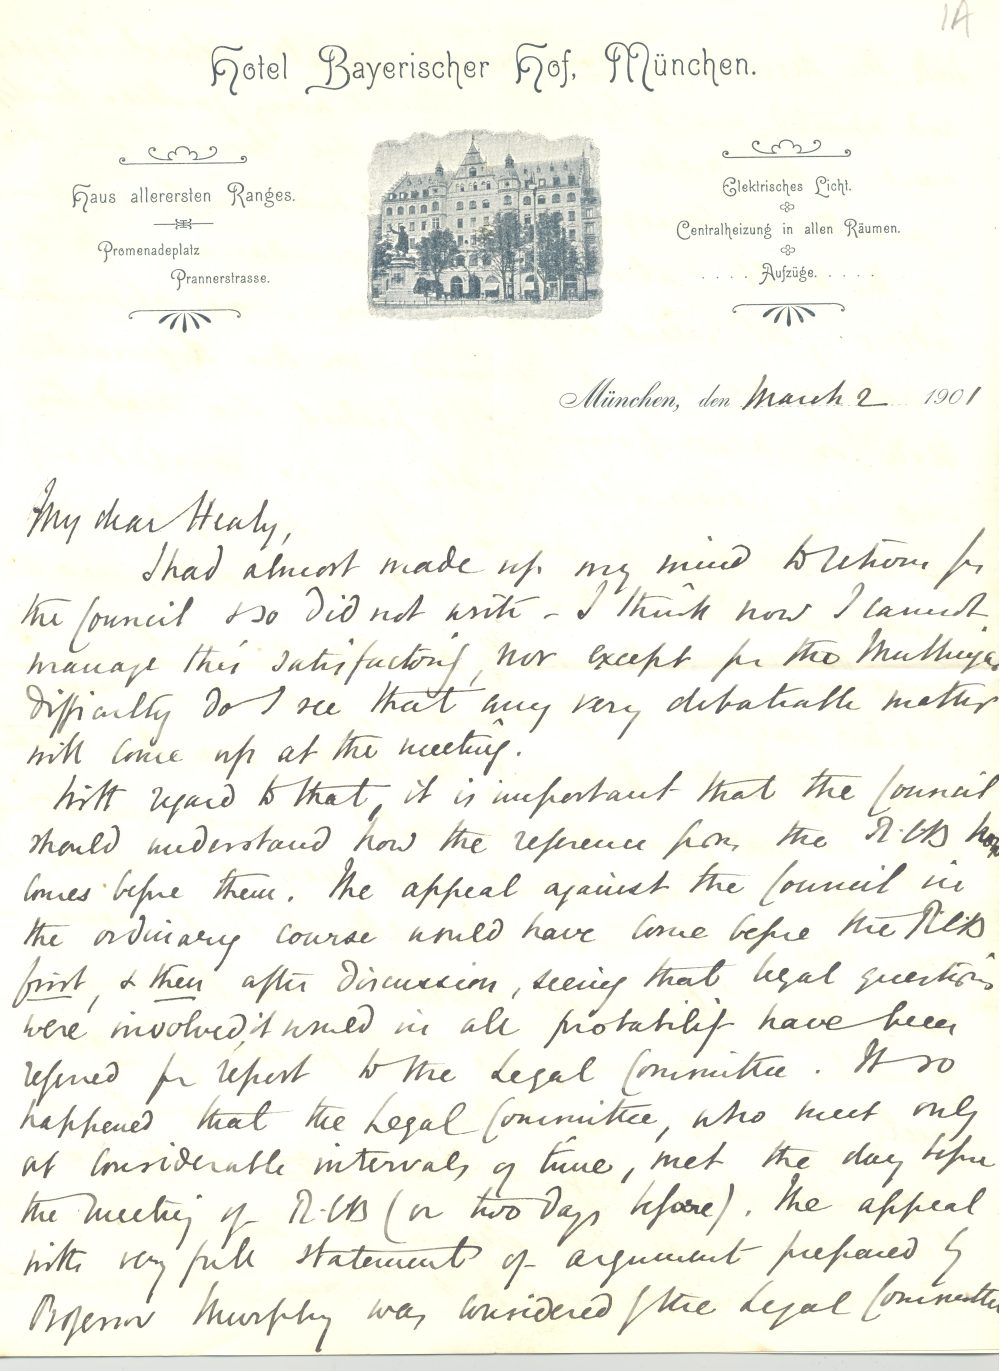 Letter from the Most Revd James Bennet Keane, Munich to Revd John Healy, keeping in touch with diocesan business, 2 March 1901, RCB Library D7/19/1/5/1